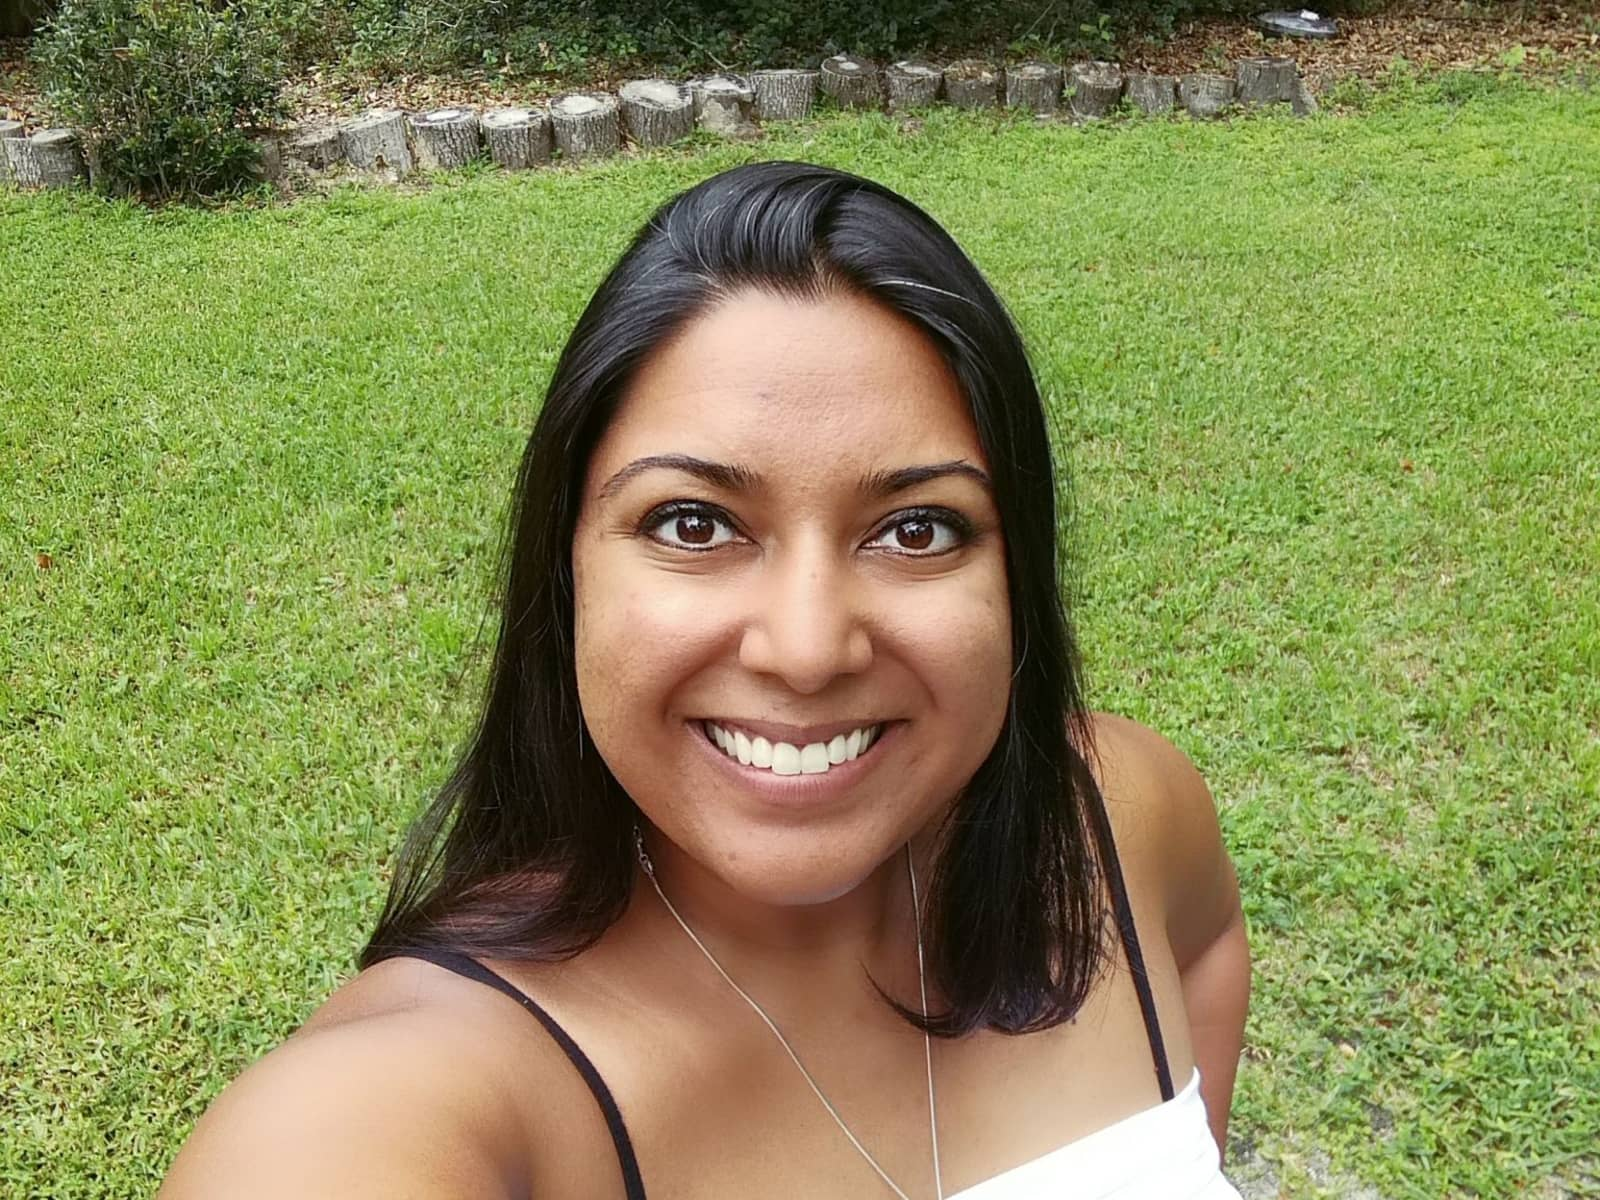 Jessica from Gainesville, Florida, United States